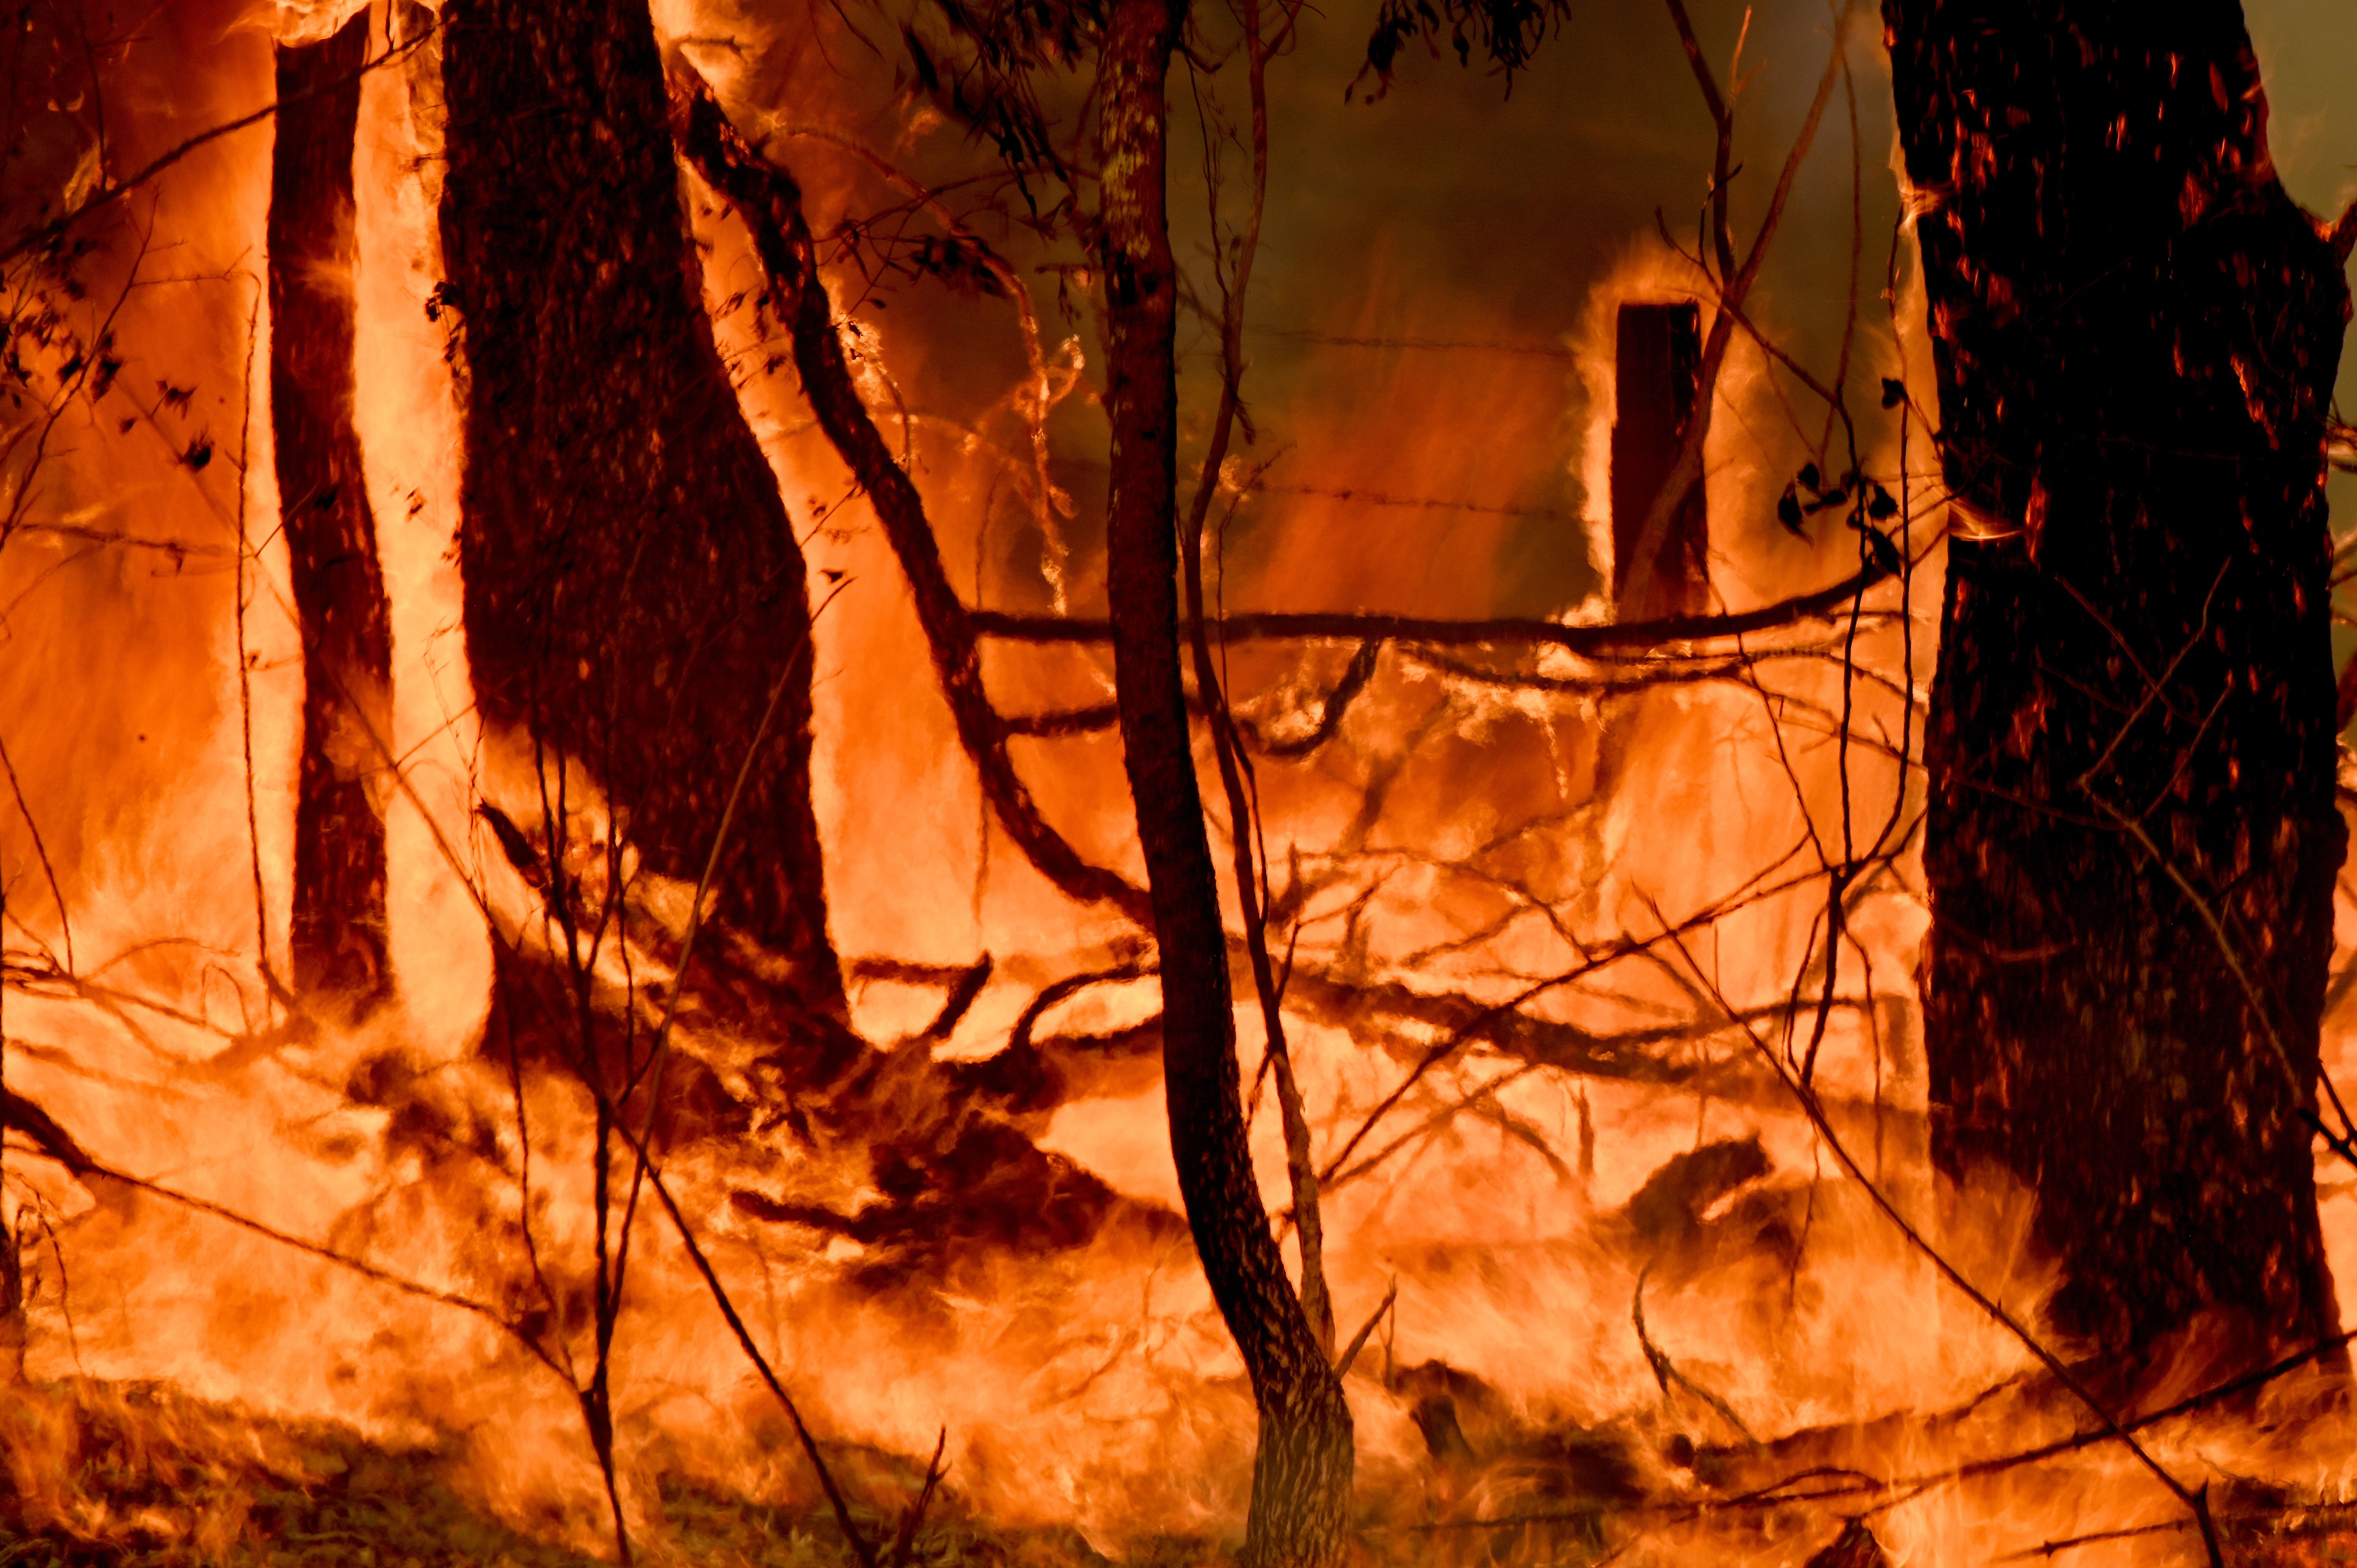 A bushfire burns outside a property near Taree, 350km north of Sydney on November 12.